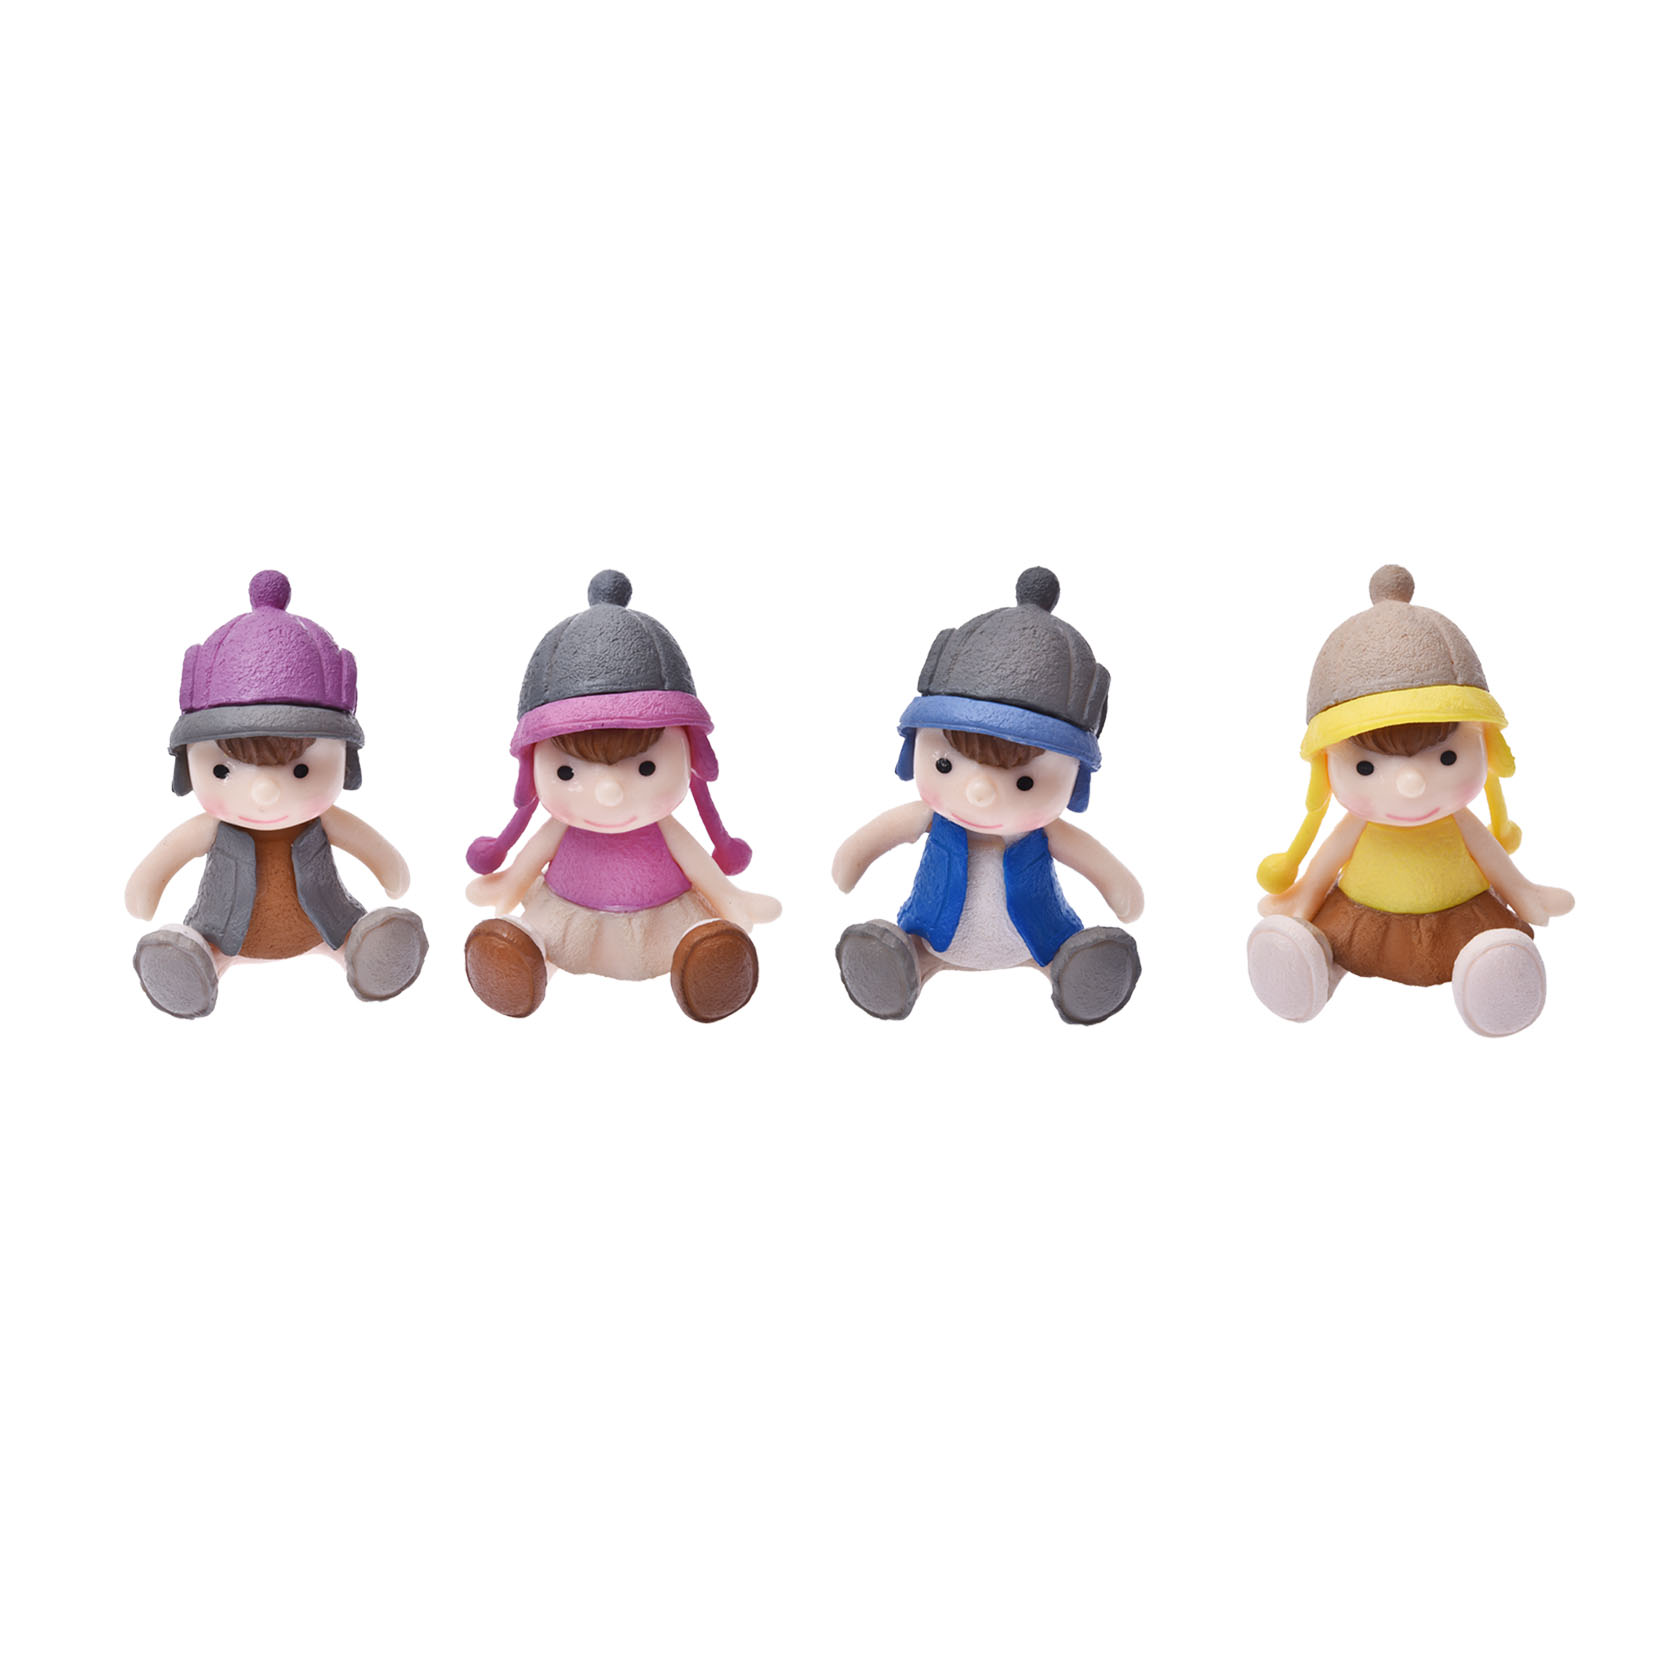 1 Pcs Cartoon Monkey D Luffy Stamp Diy Toy Self Inking Photosensitive Seal Without Handle Funny Planner Scrapbooking Stamps Badge Holder & Accessories